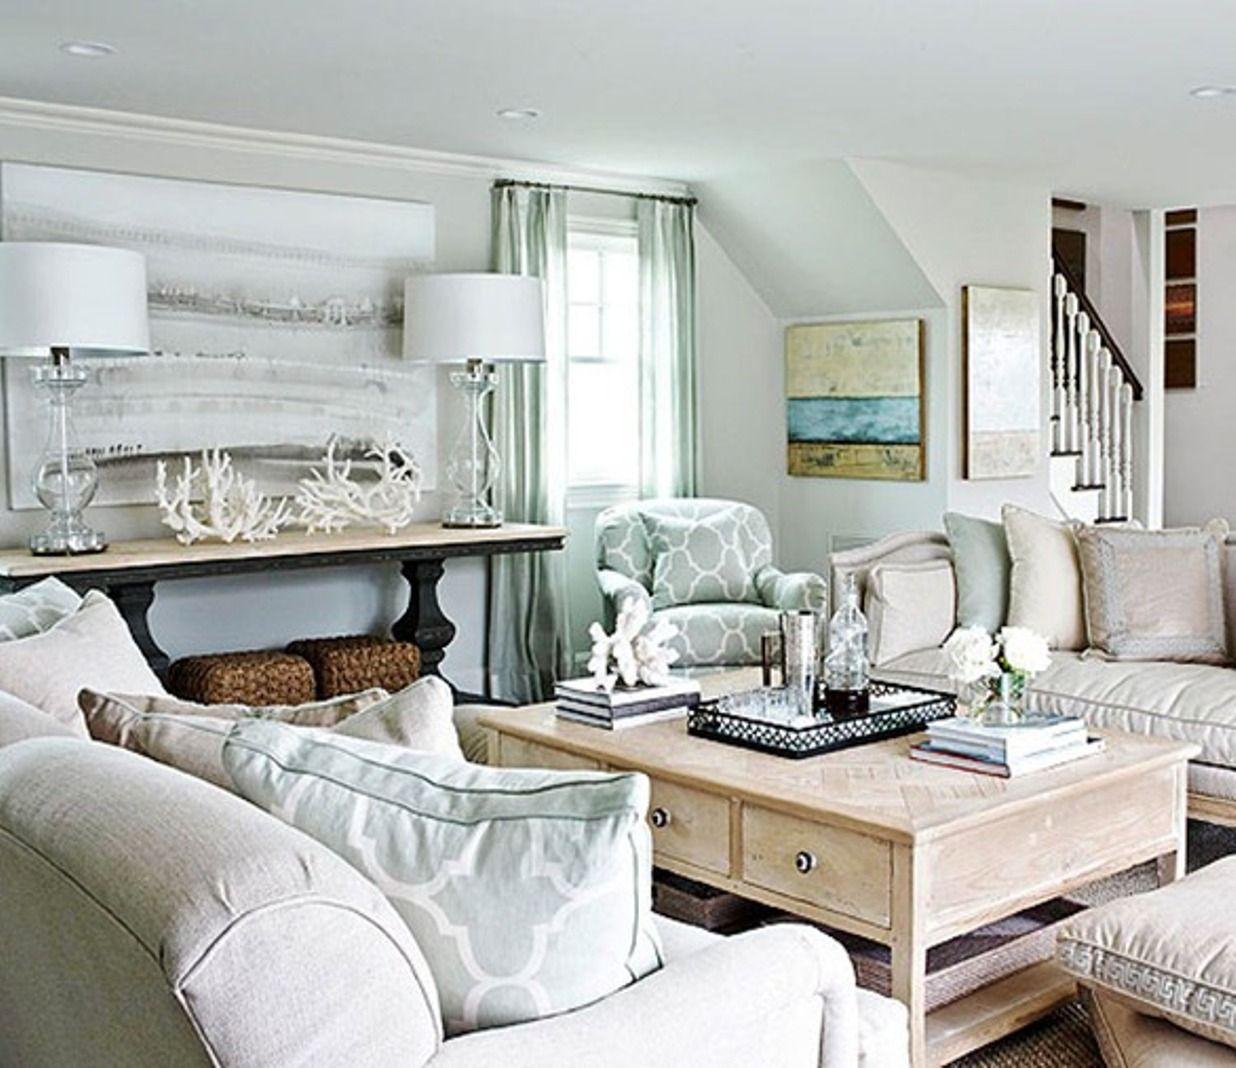 Creating A Beachy Or Coastal Vibe Is Easy To Do If You Find Your